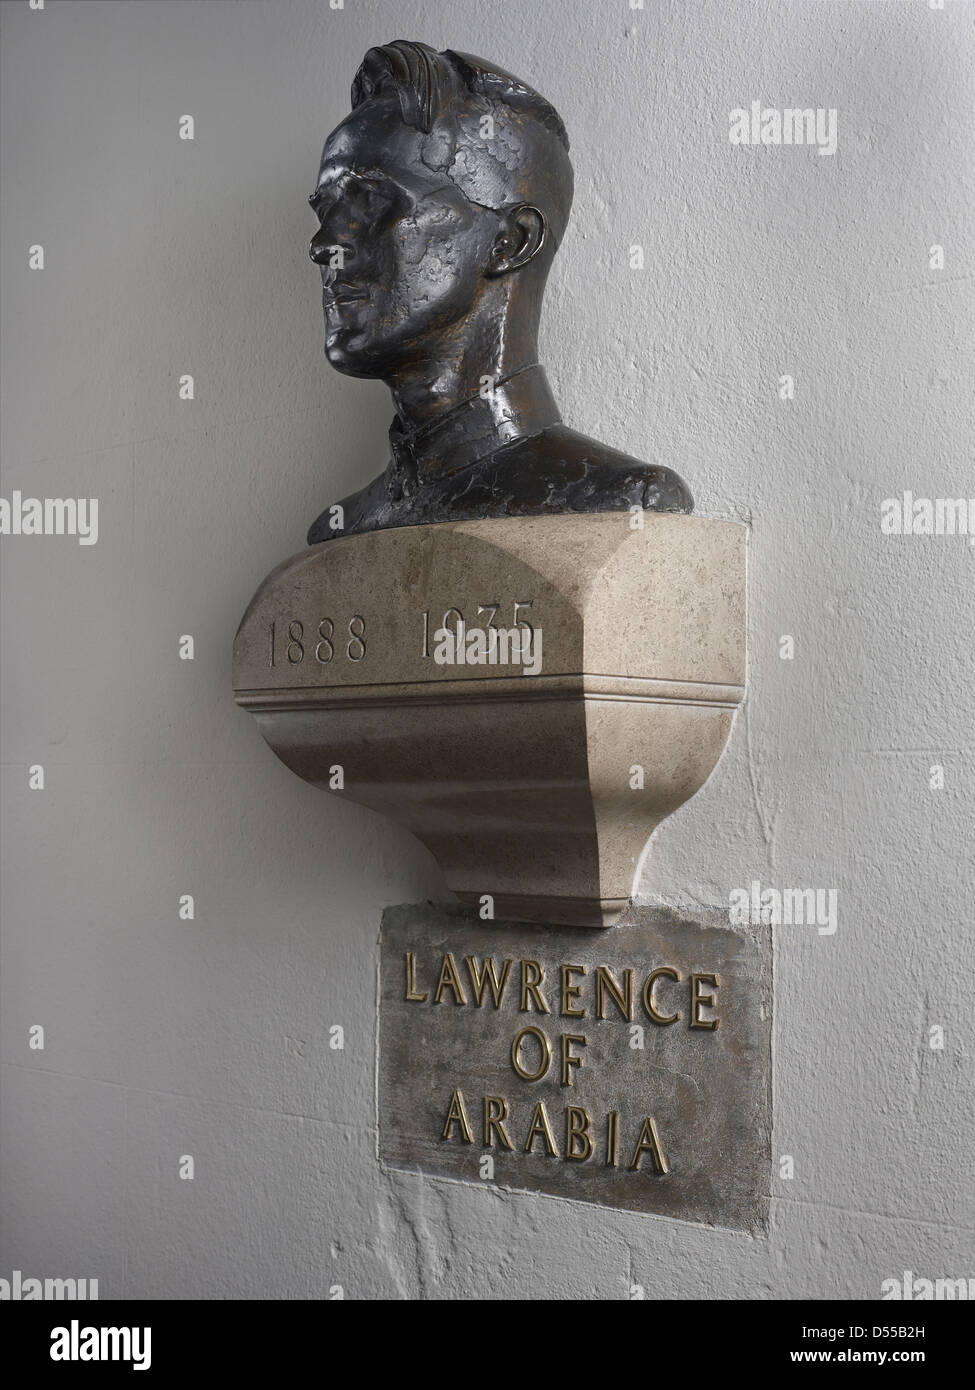 Saint Paul's Cathedral Lawrence of Arabia bust profile - Stock Image